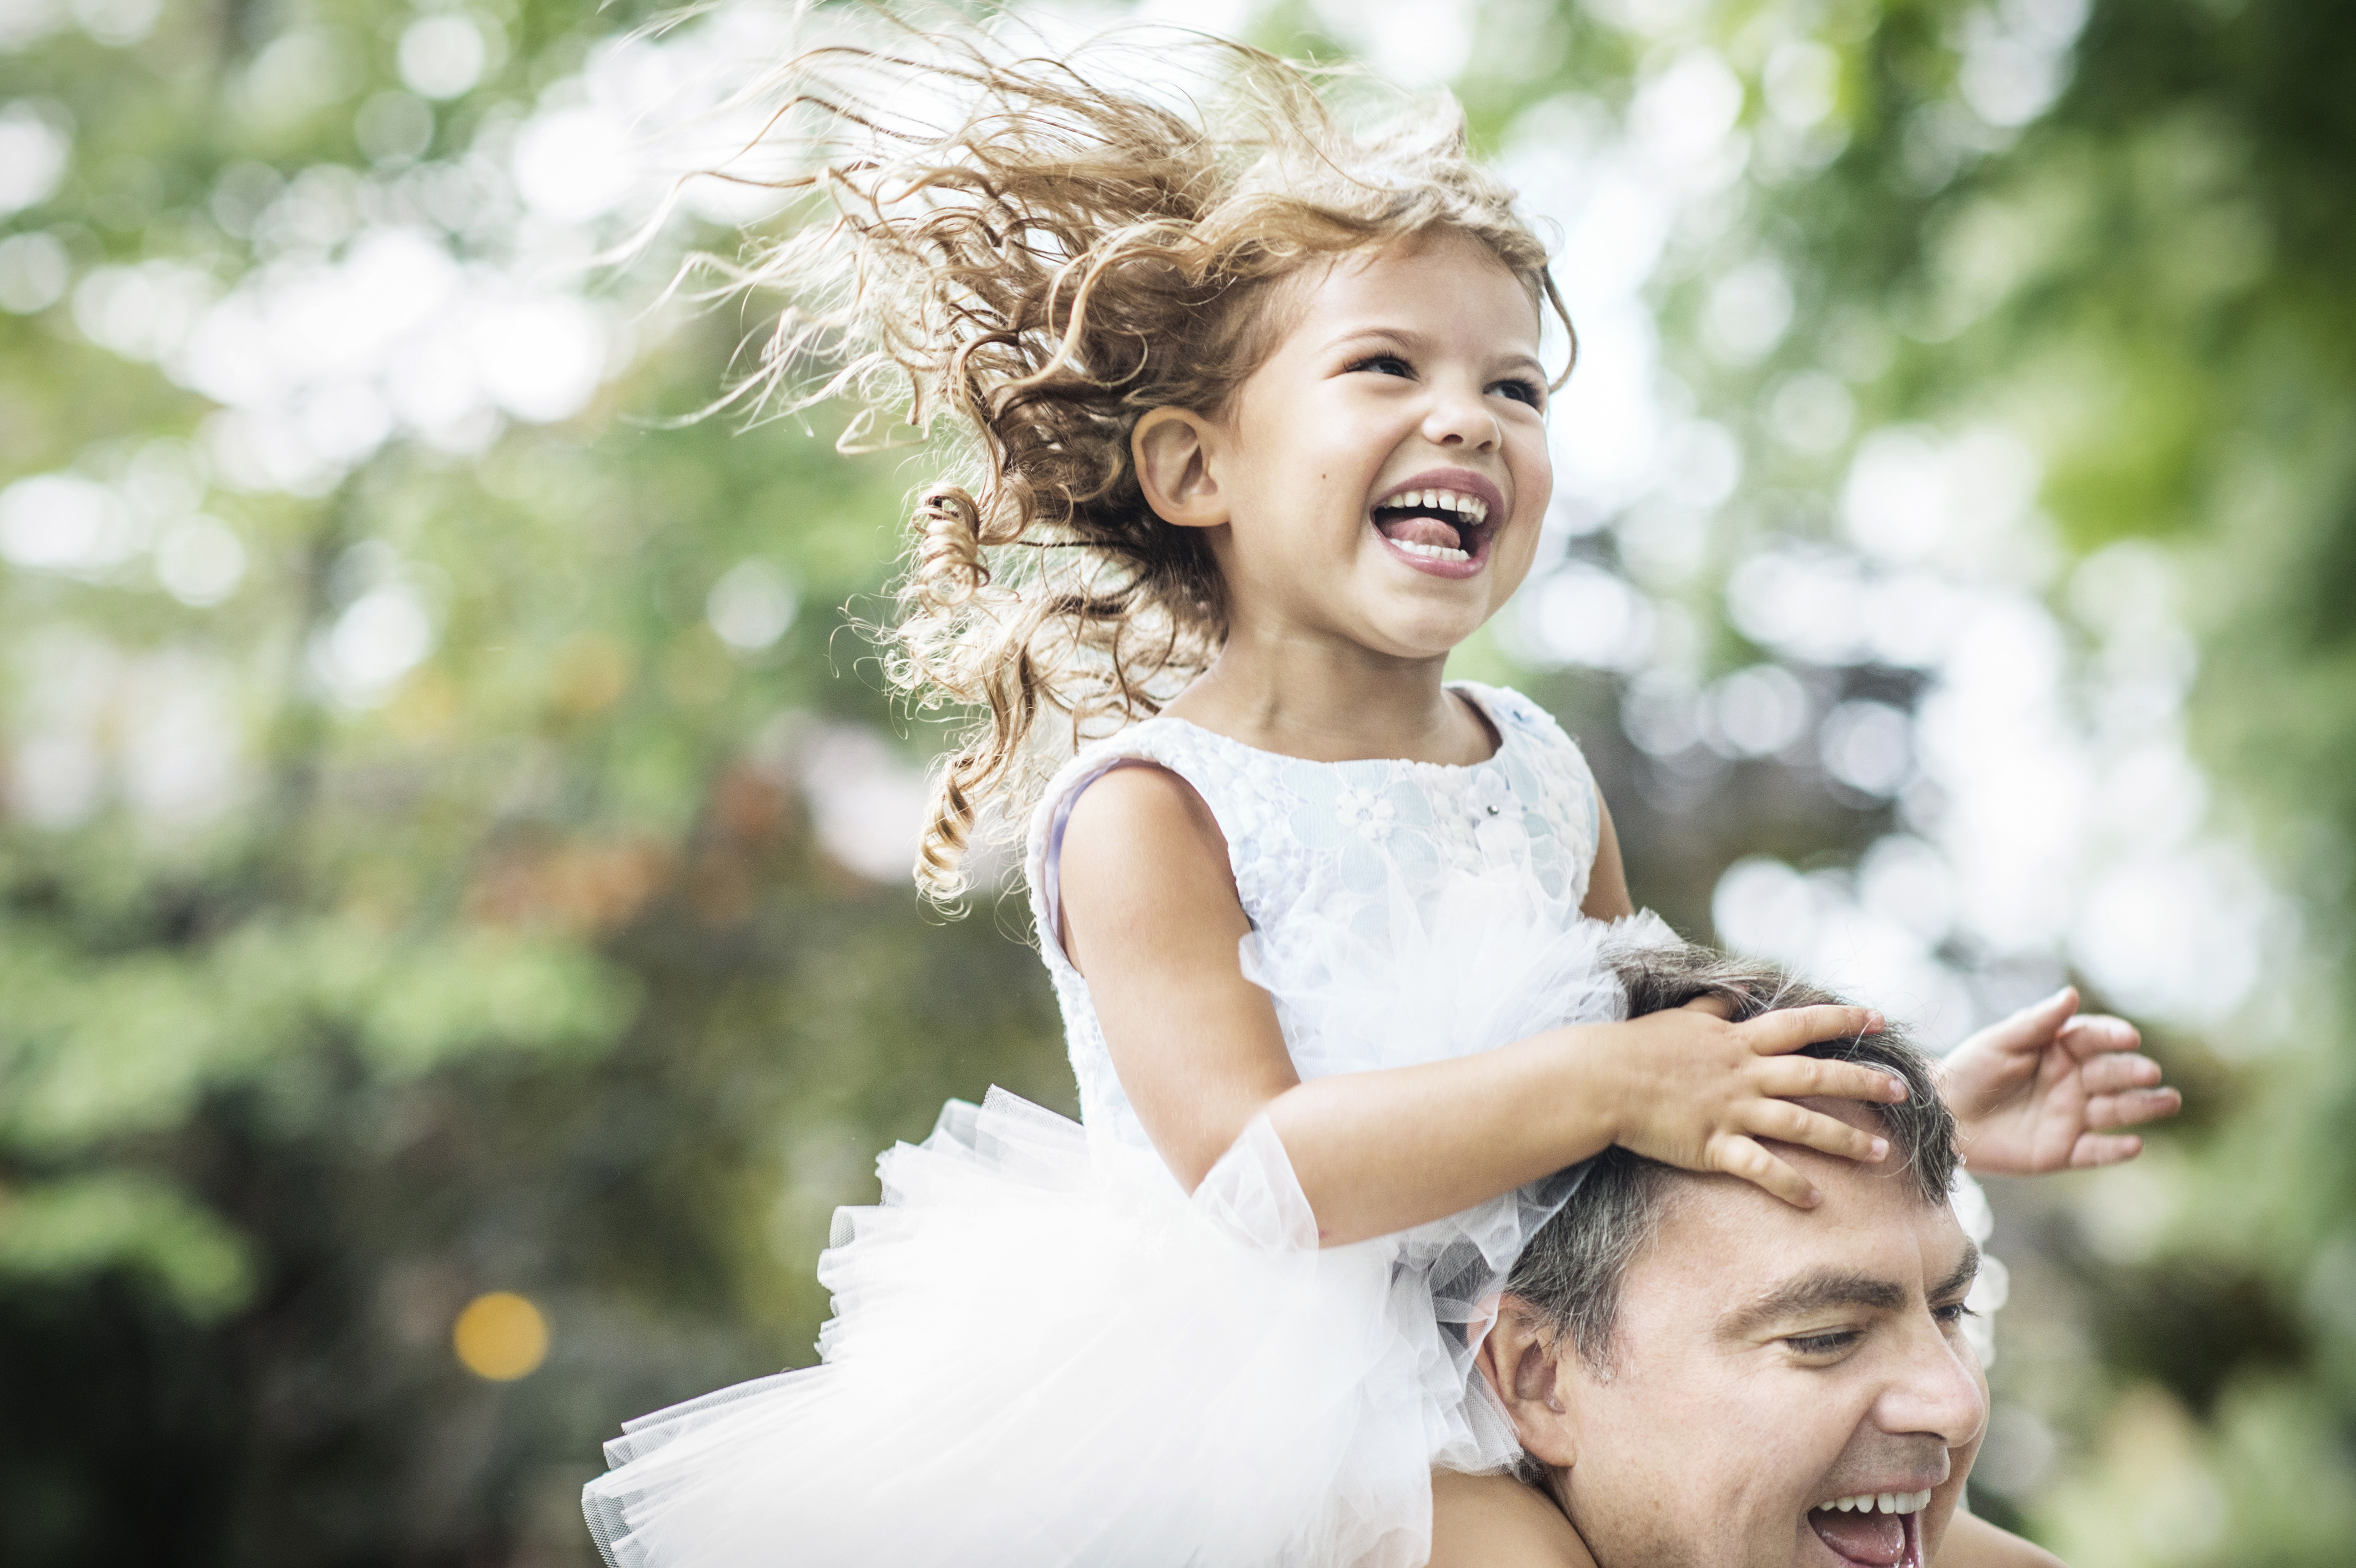 girl laughing on dads shoulders